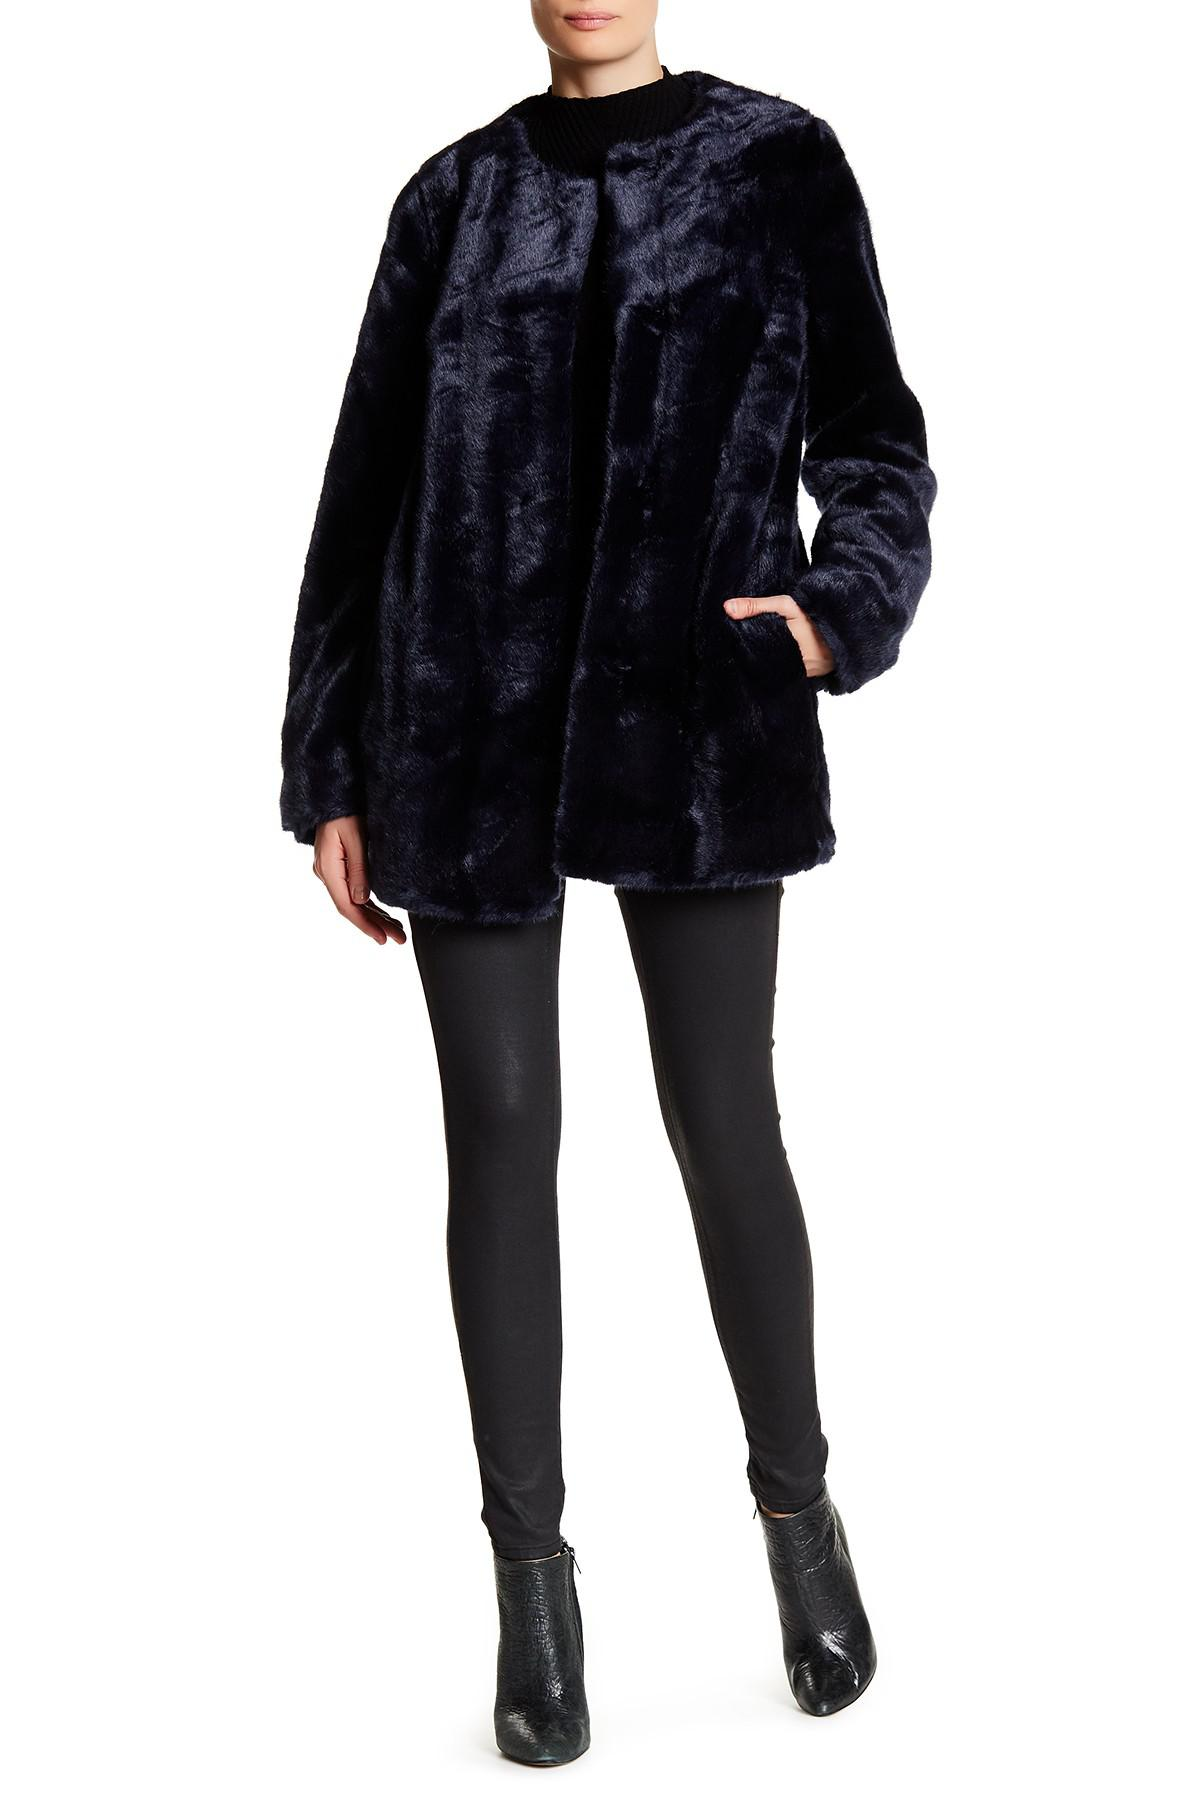 Vince Camuto Faux Fur Coat In Blue Lyst